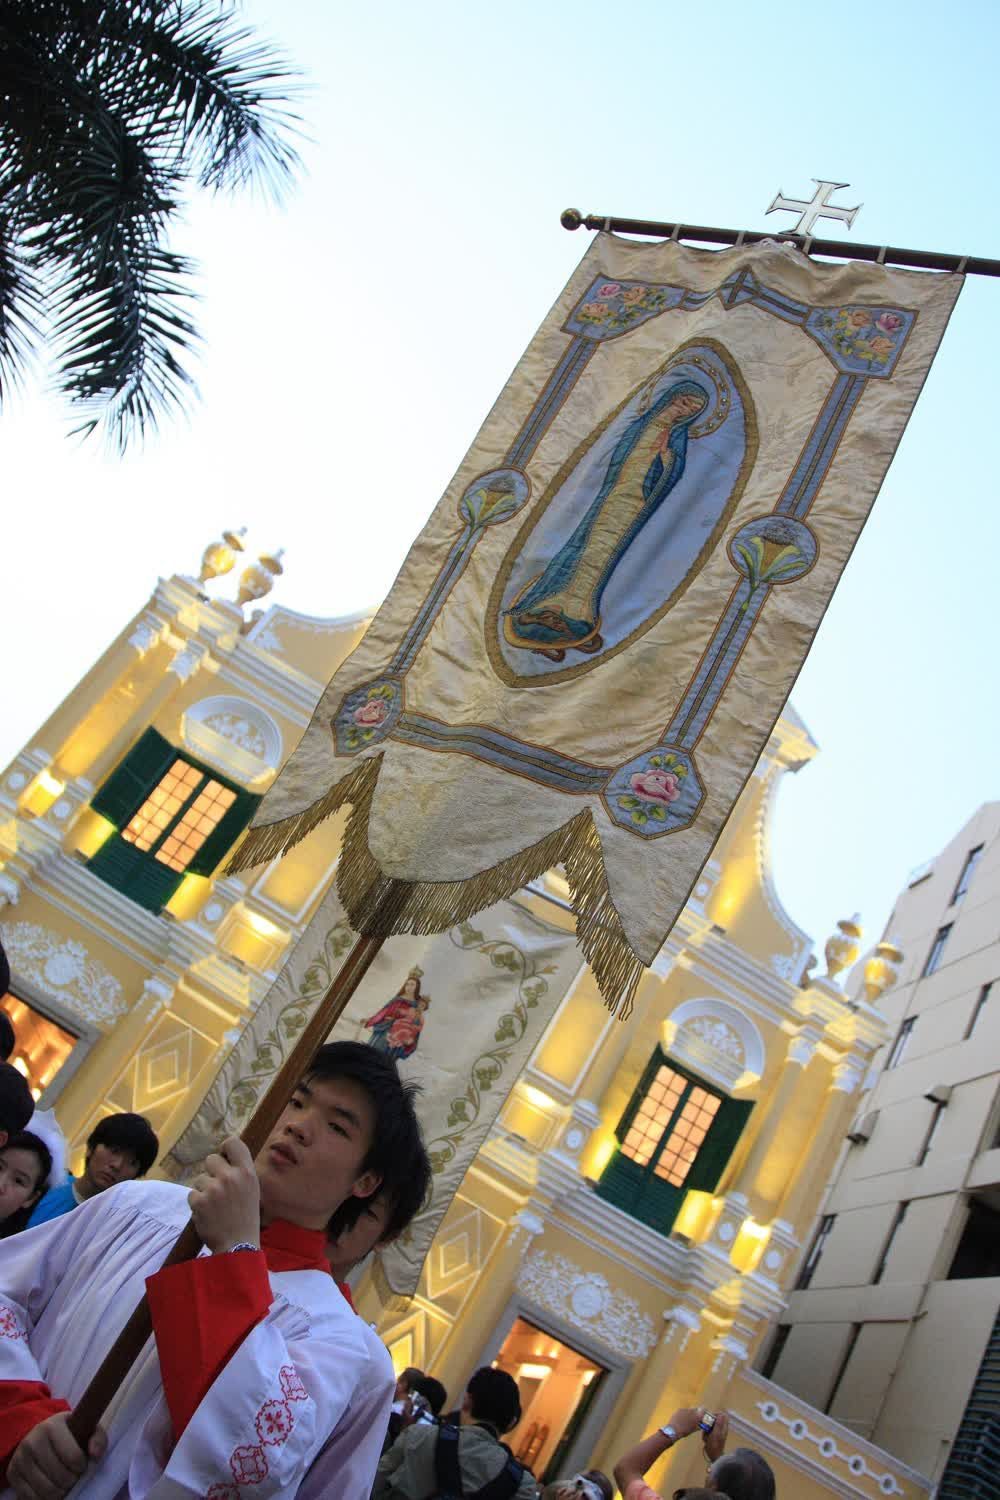 title: Our Lady festival Macau